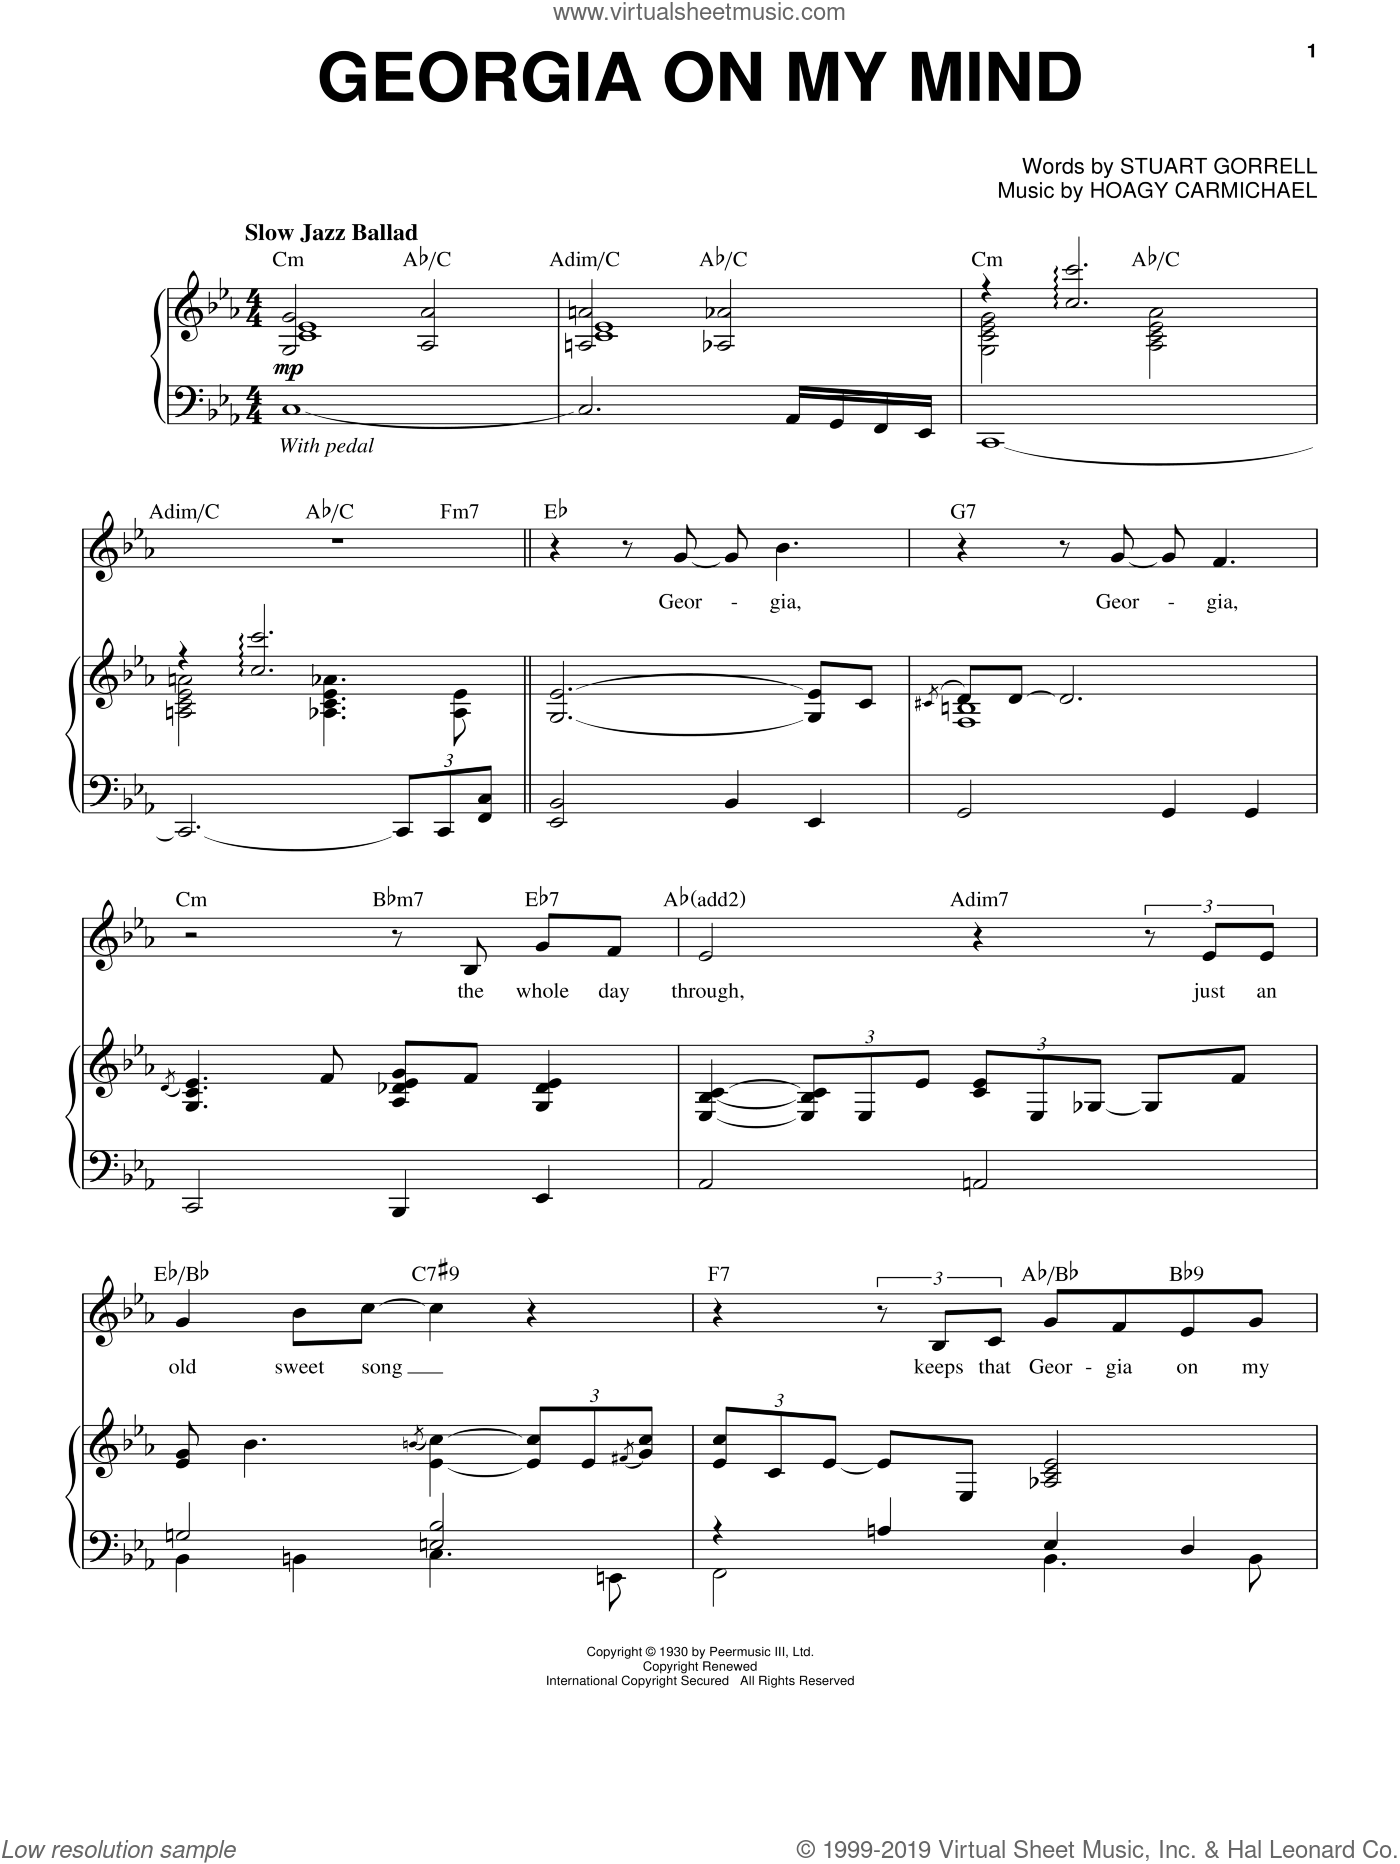 Georgia On My Mind sheet music for voice and piano by Stuart Gorrell